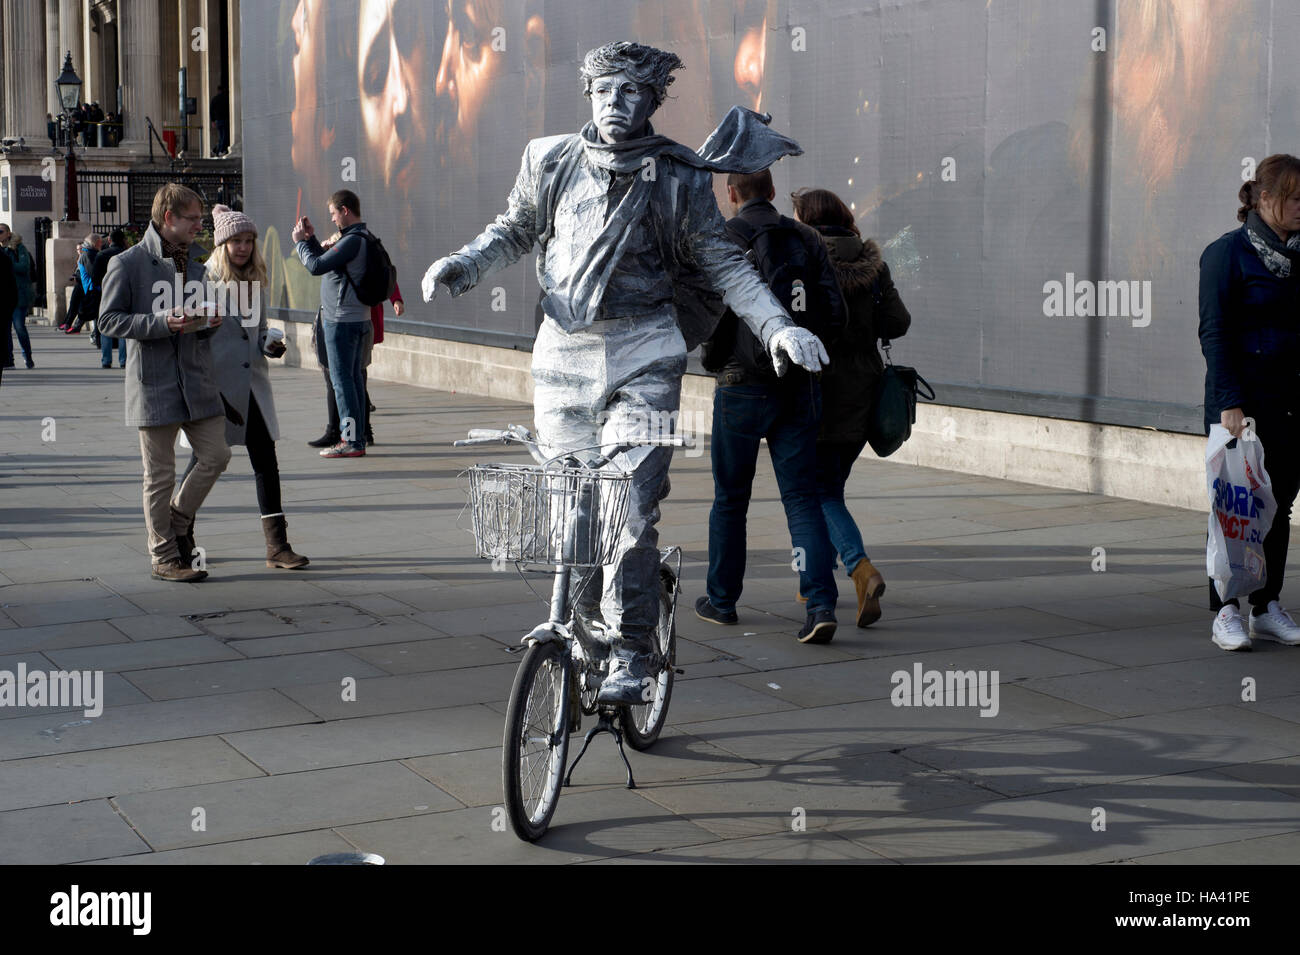 National Gallery, Trafalgar Square. Mime artist on a bicycle and passers-by - Stock Image